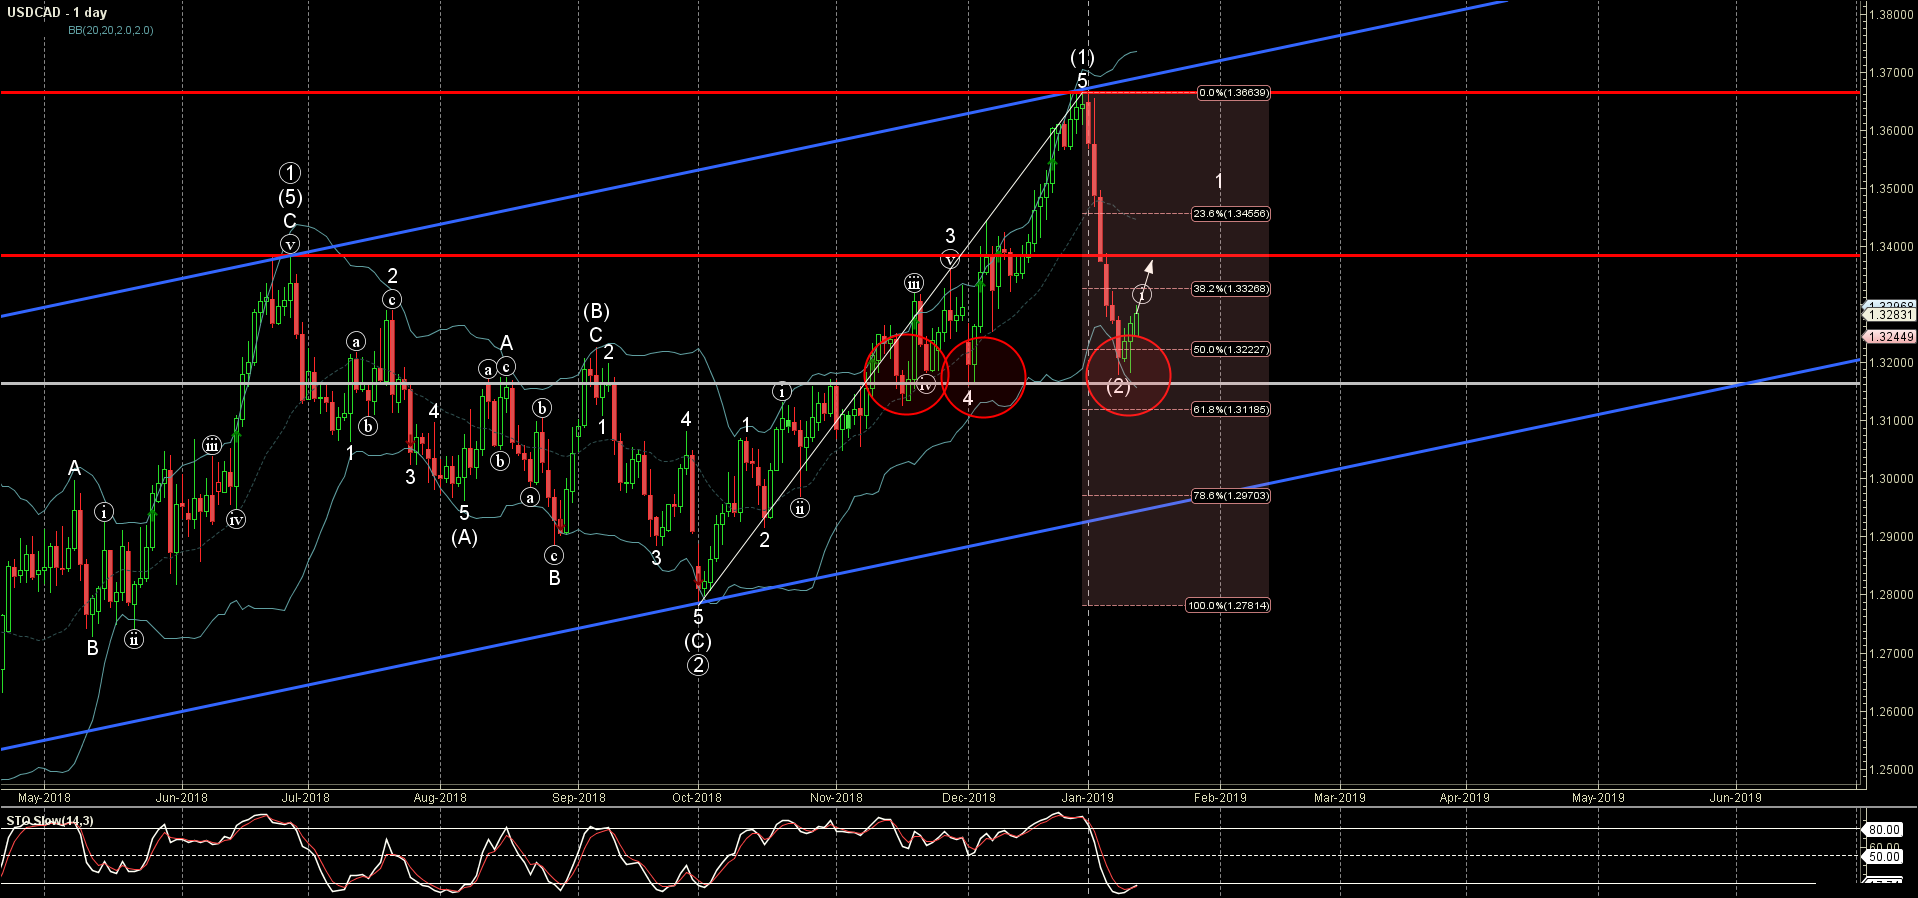 USDCAD Wave Analysis – 14 January, 2019